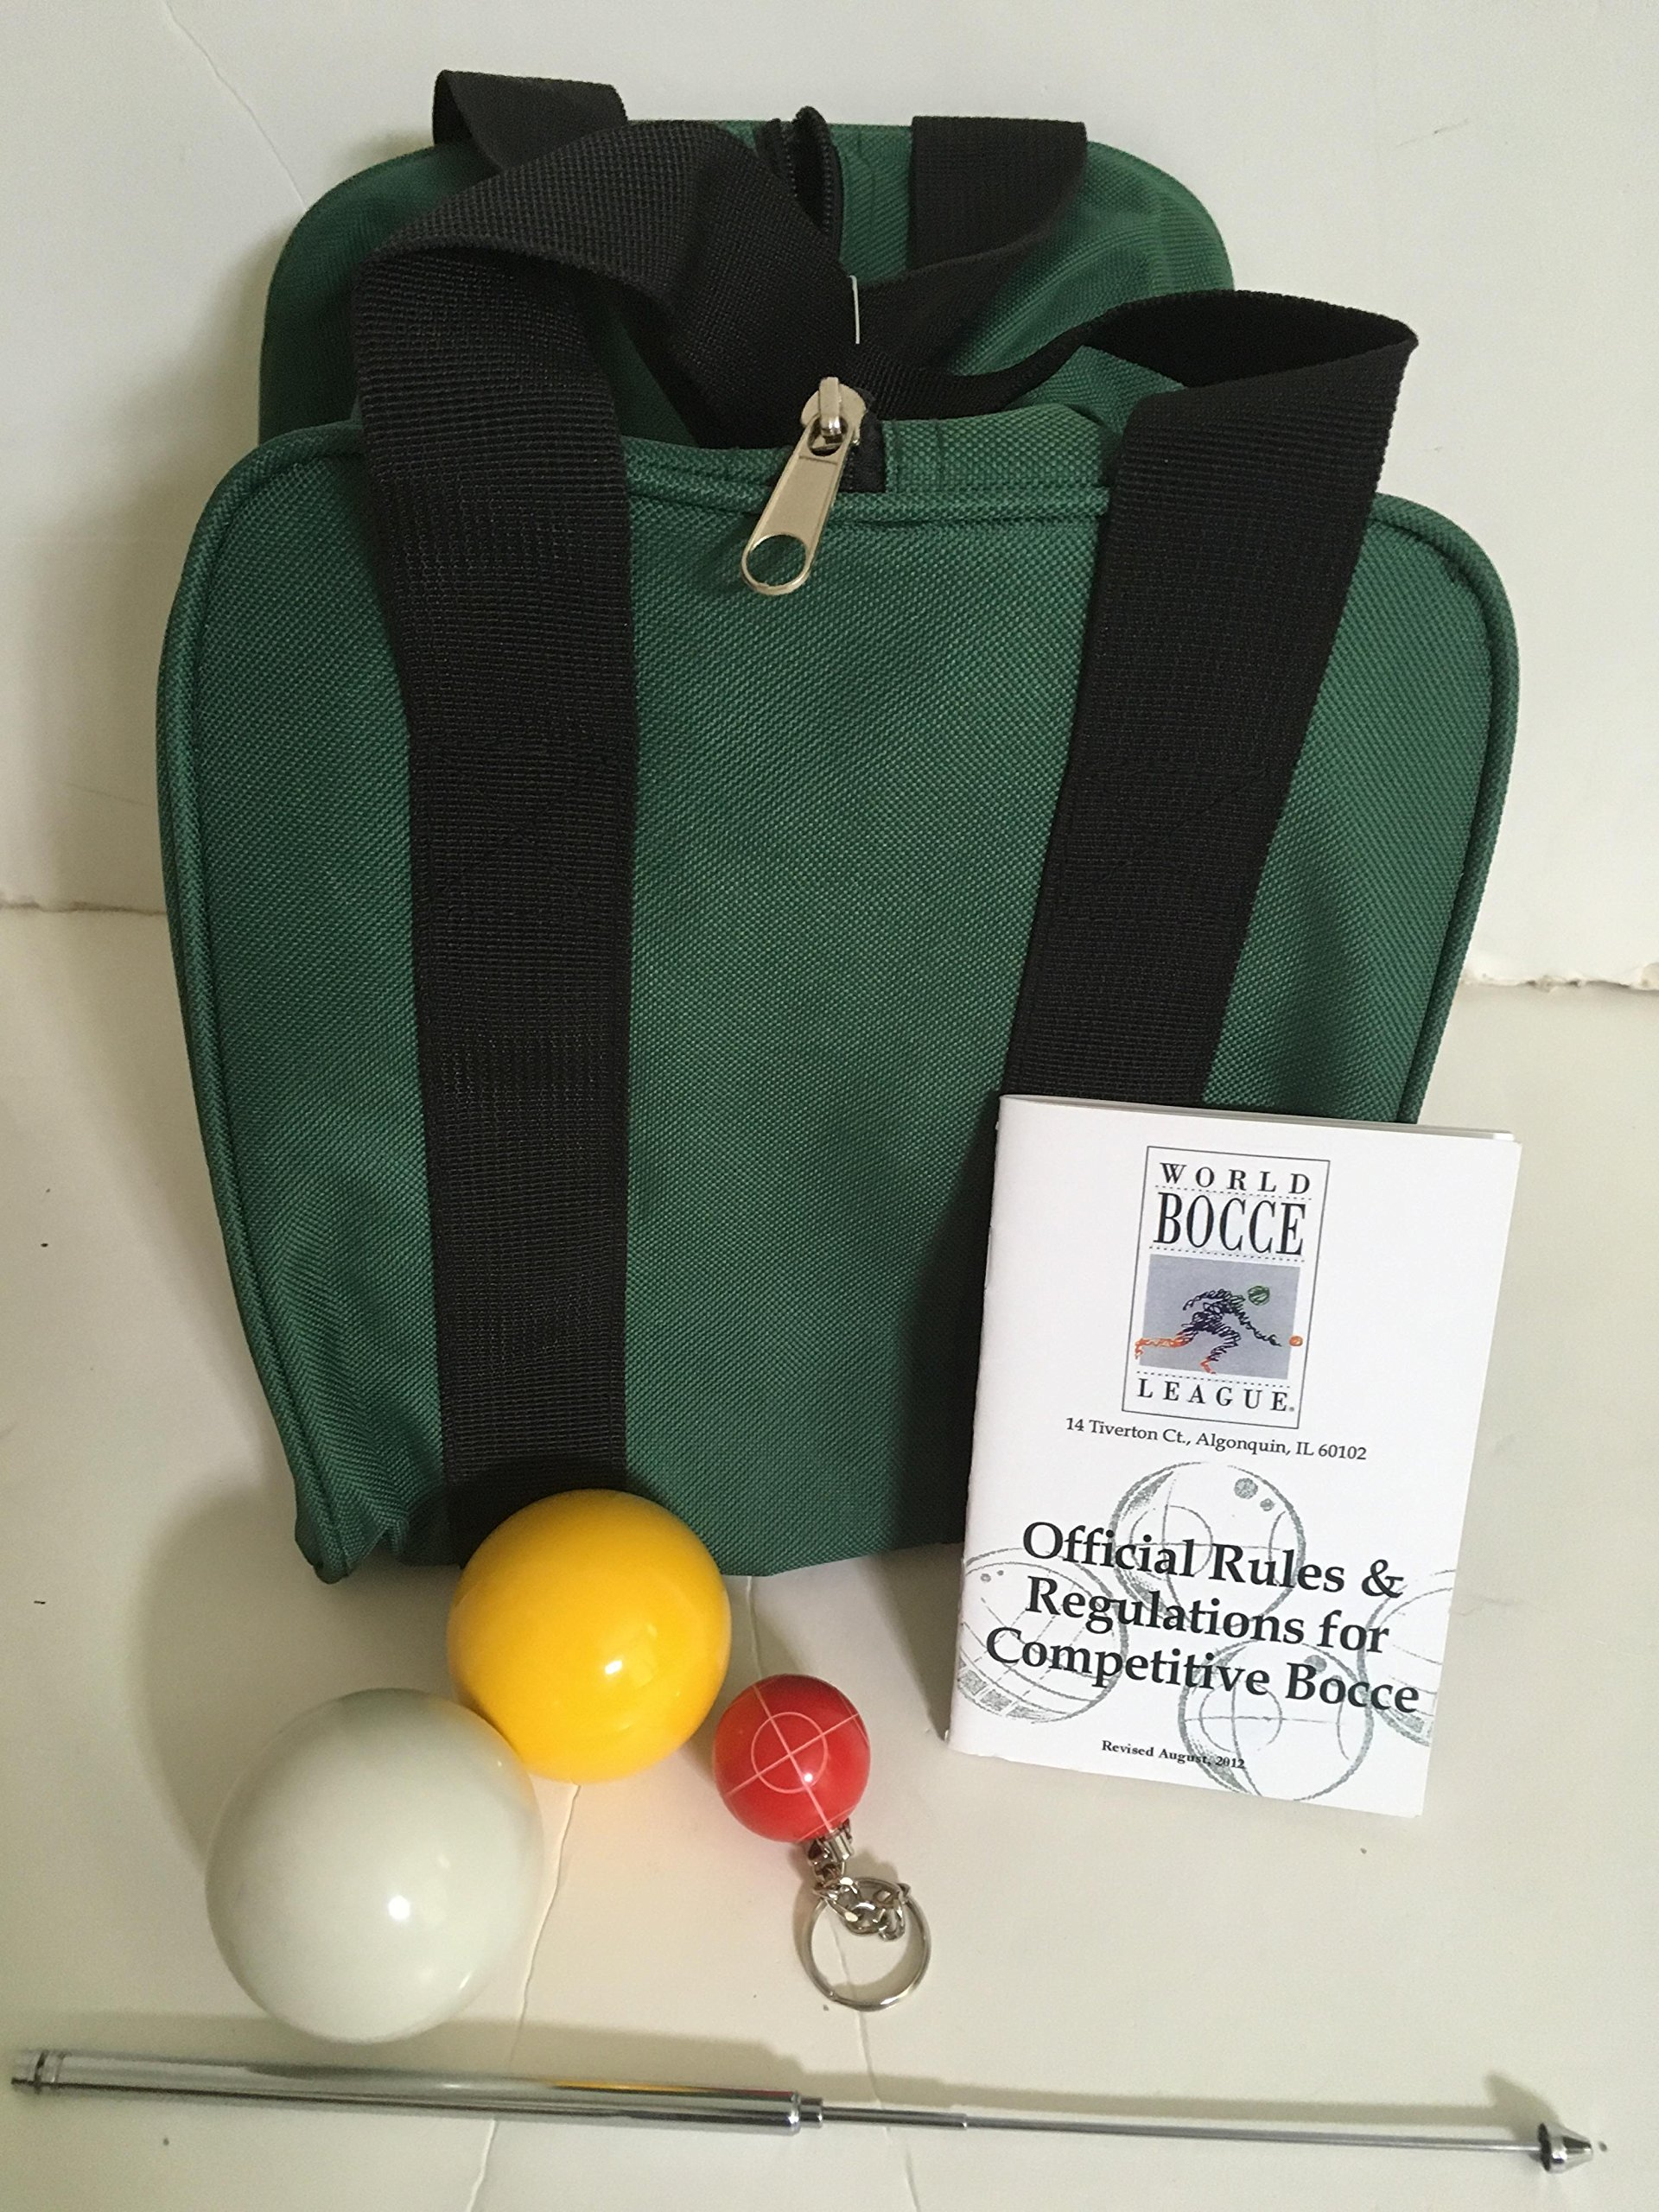 Unique Bocce Ball Accessories Package - Extra Heavy Duty Nylon Bocce Bag (Green with Black Handles), yellow and white pallinas, Extendable Measuring Device, Rule Book and Keychain